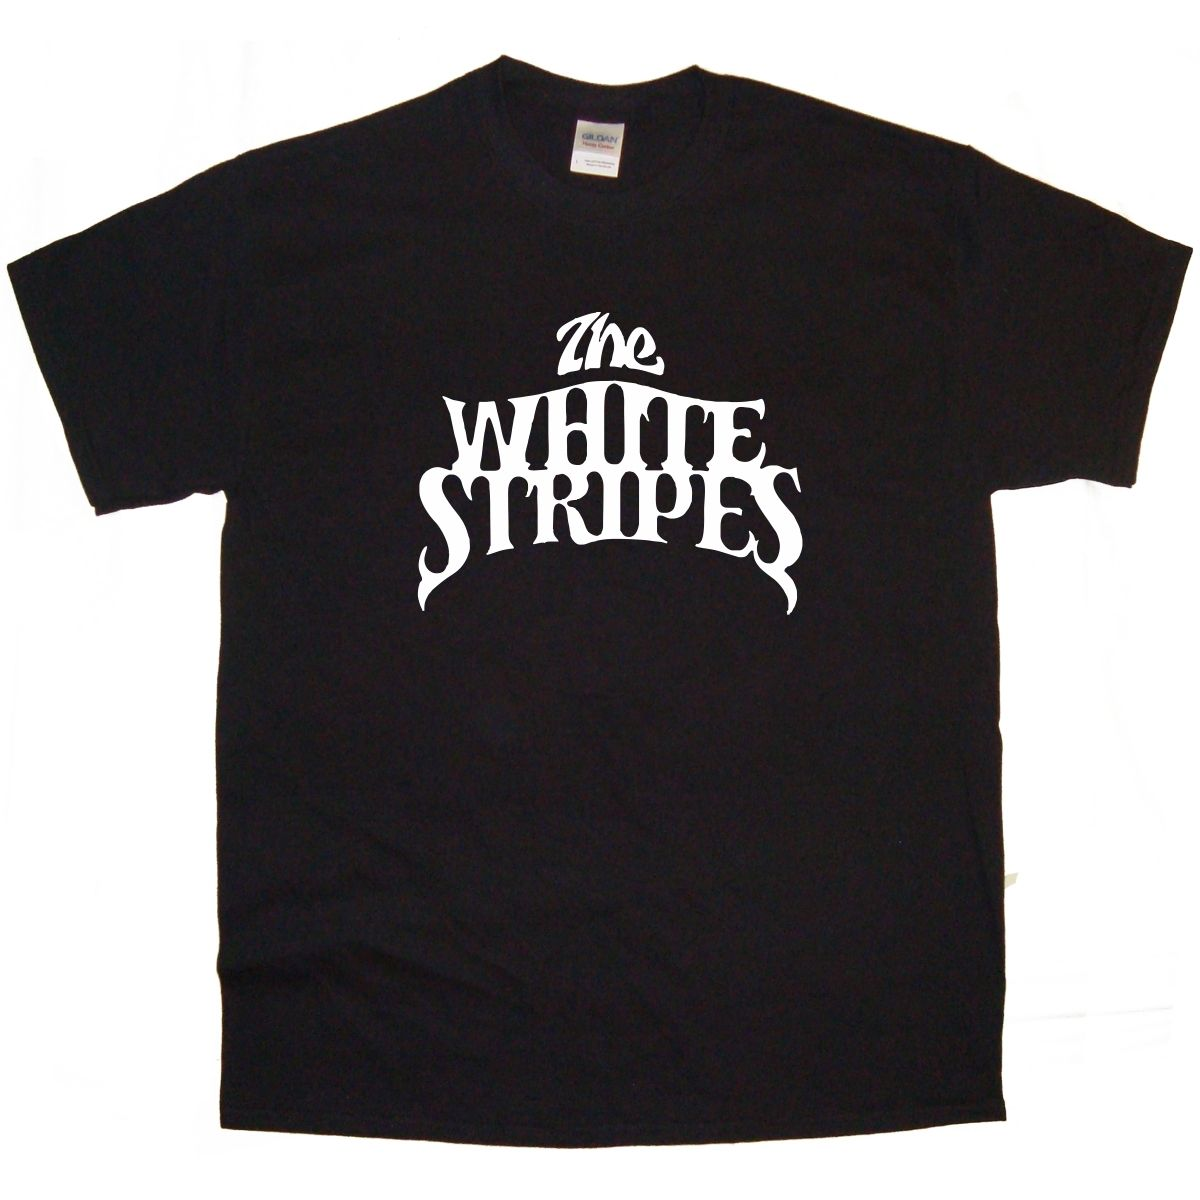 Black t shirt with white stripes - The White Stripes Band Logo Rock Thrash Black Heavy Metal Punk Pop T Shirt Tee